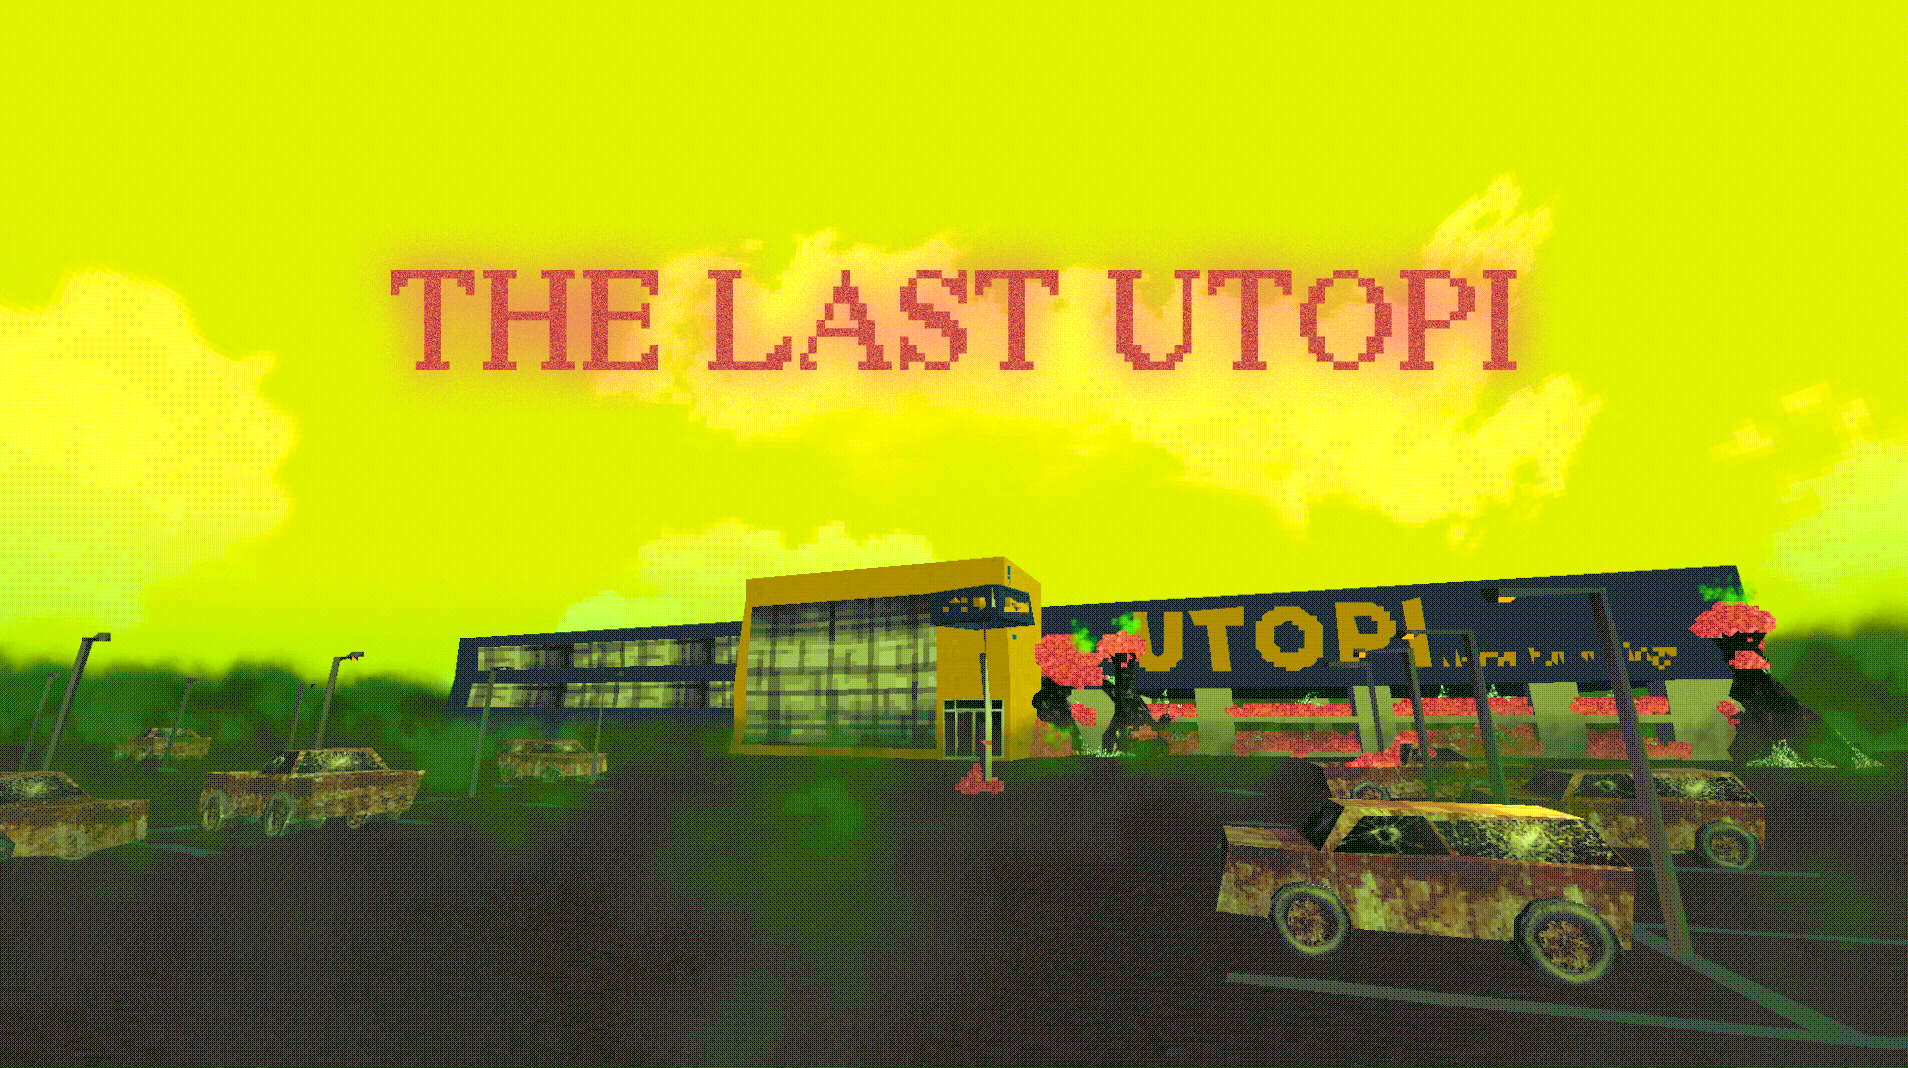 The Last Utopi